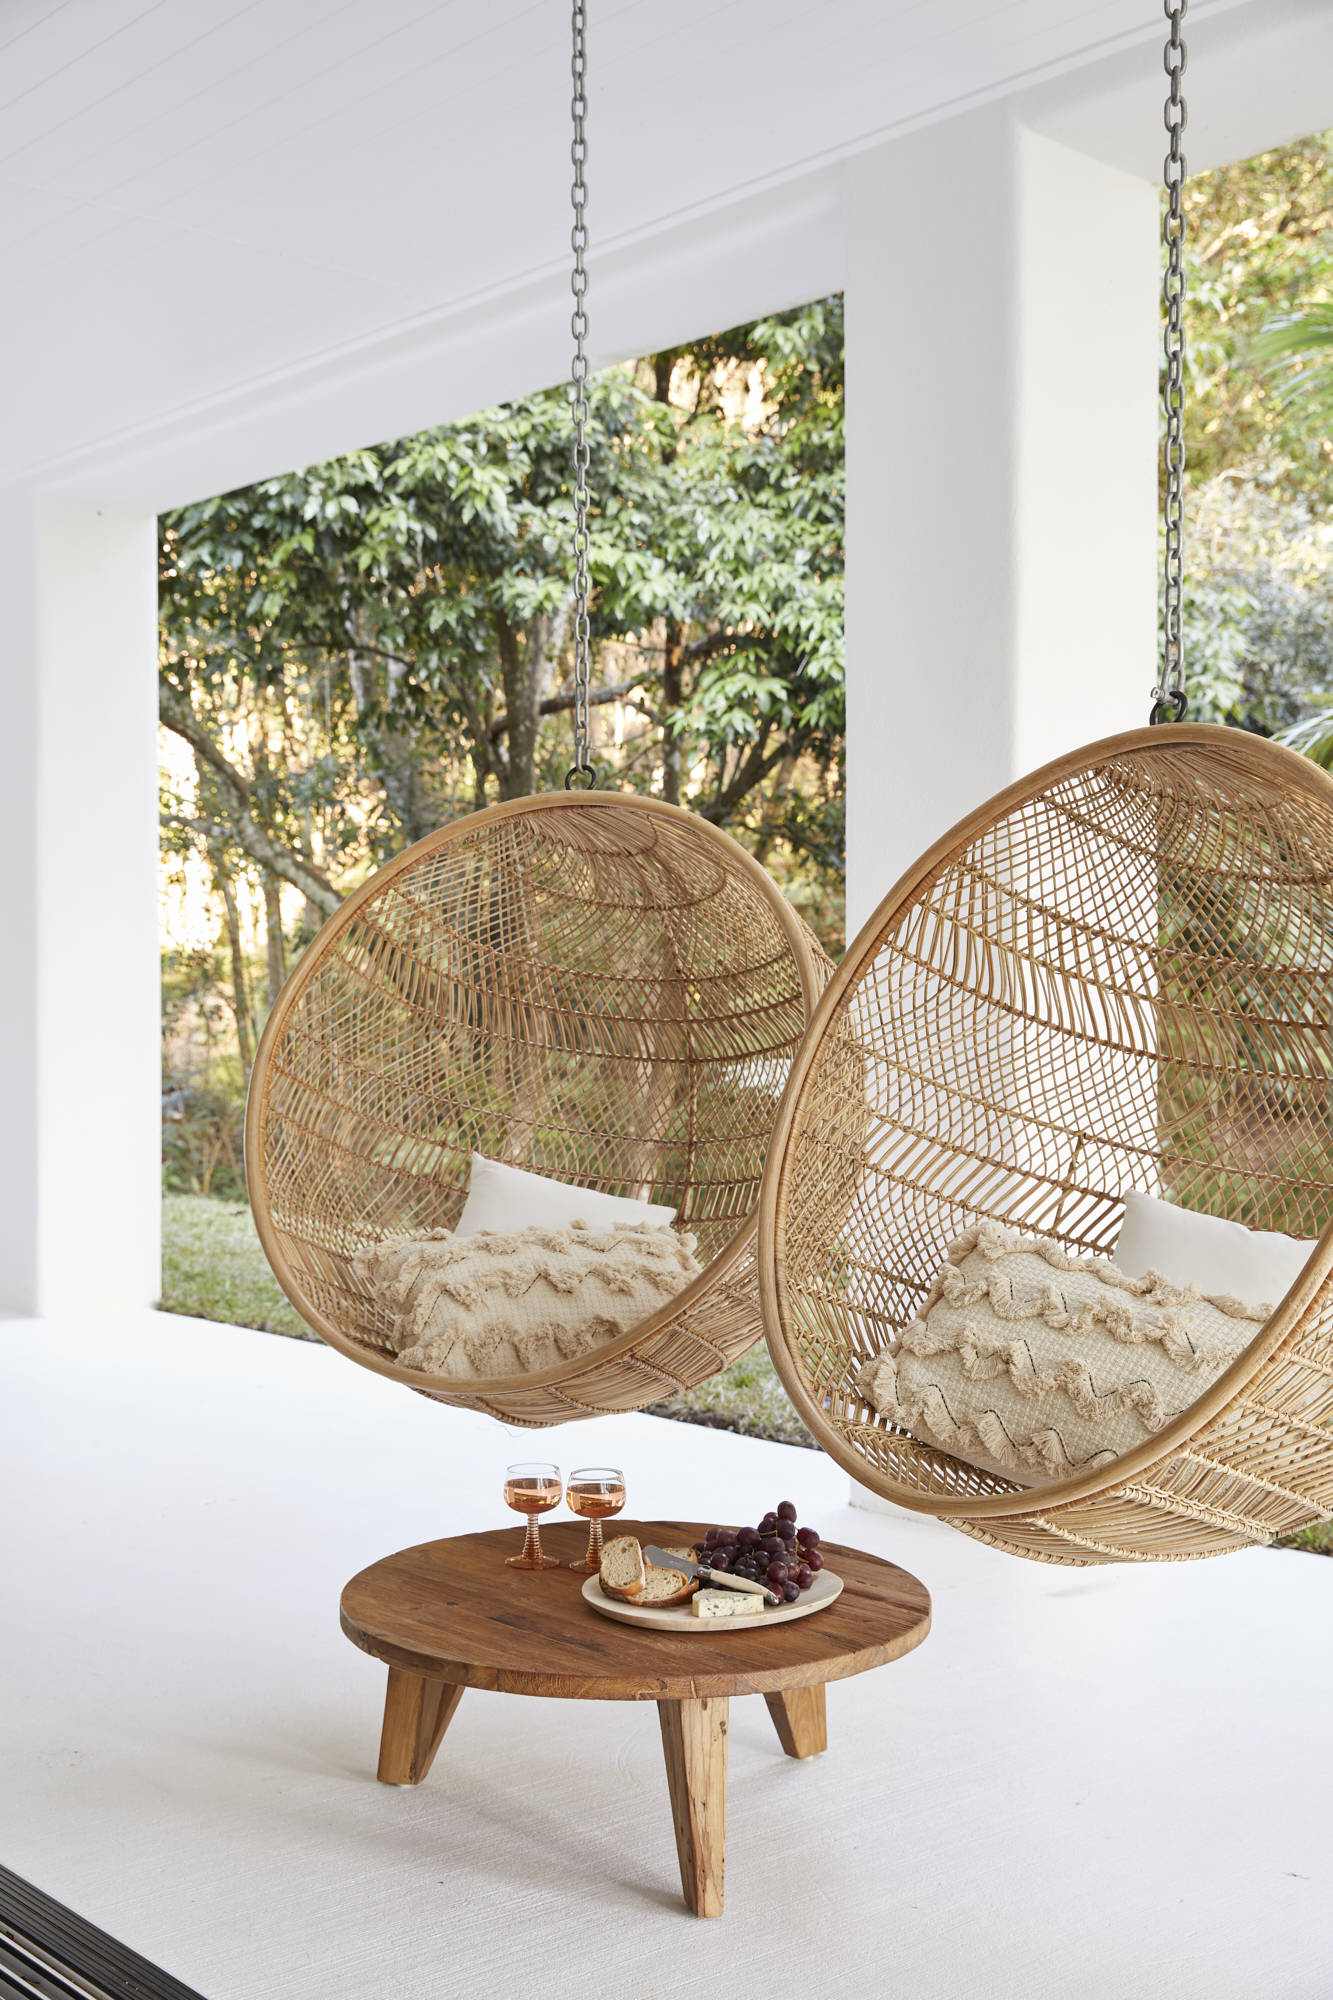 Hanging Chairs